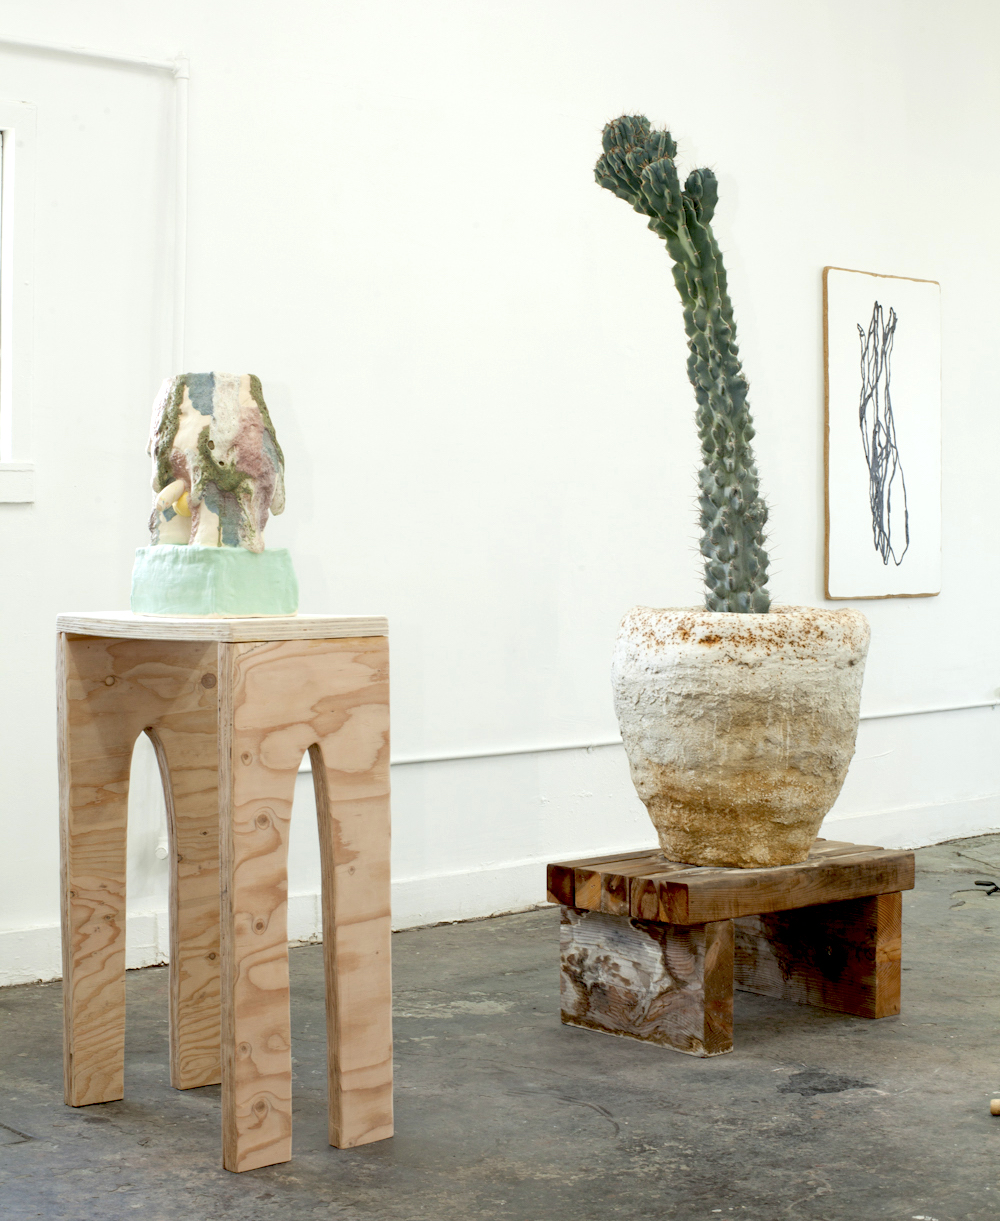 (Left to Right) Alice Lang, Better Half 2, 2017,  Lava glaze on ceramic w/ plywood base   |   John Zappas, Big John Pot, 2017, Hydracal and redwood base